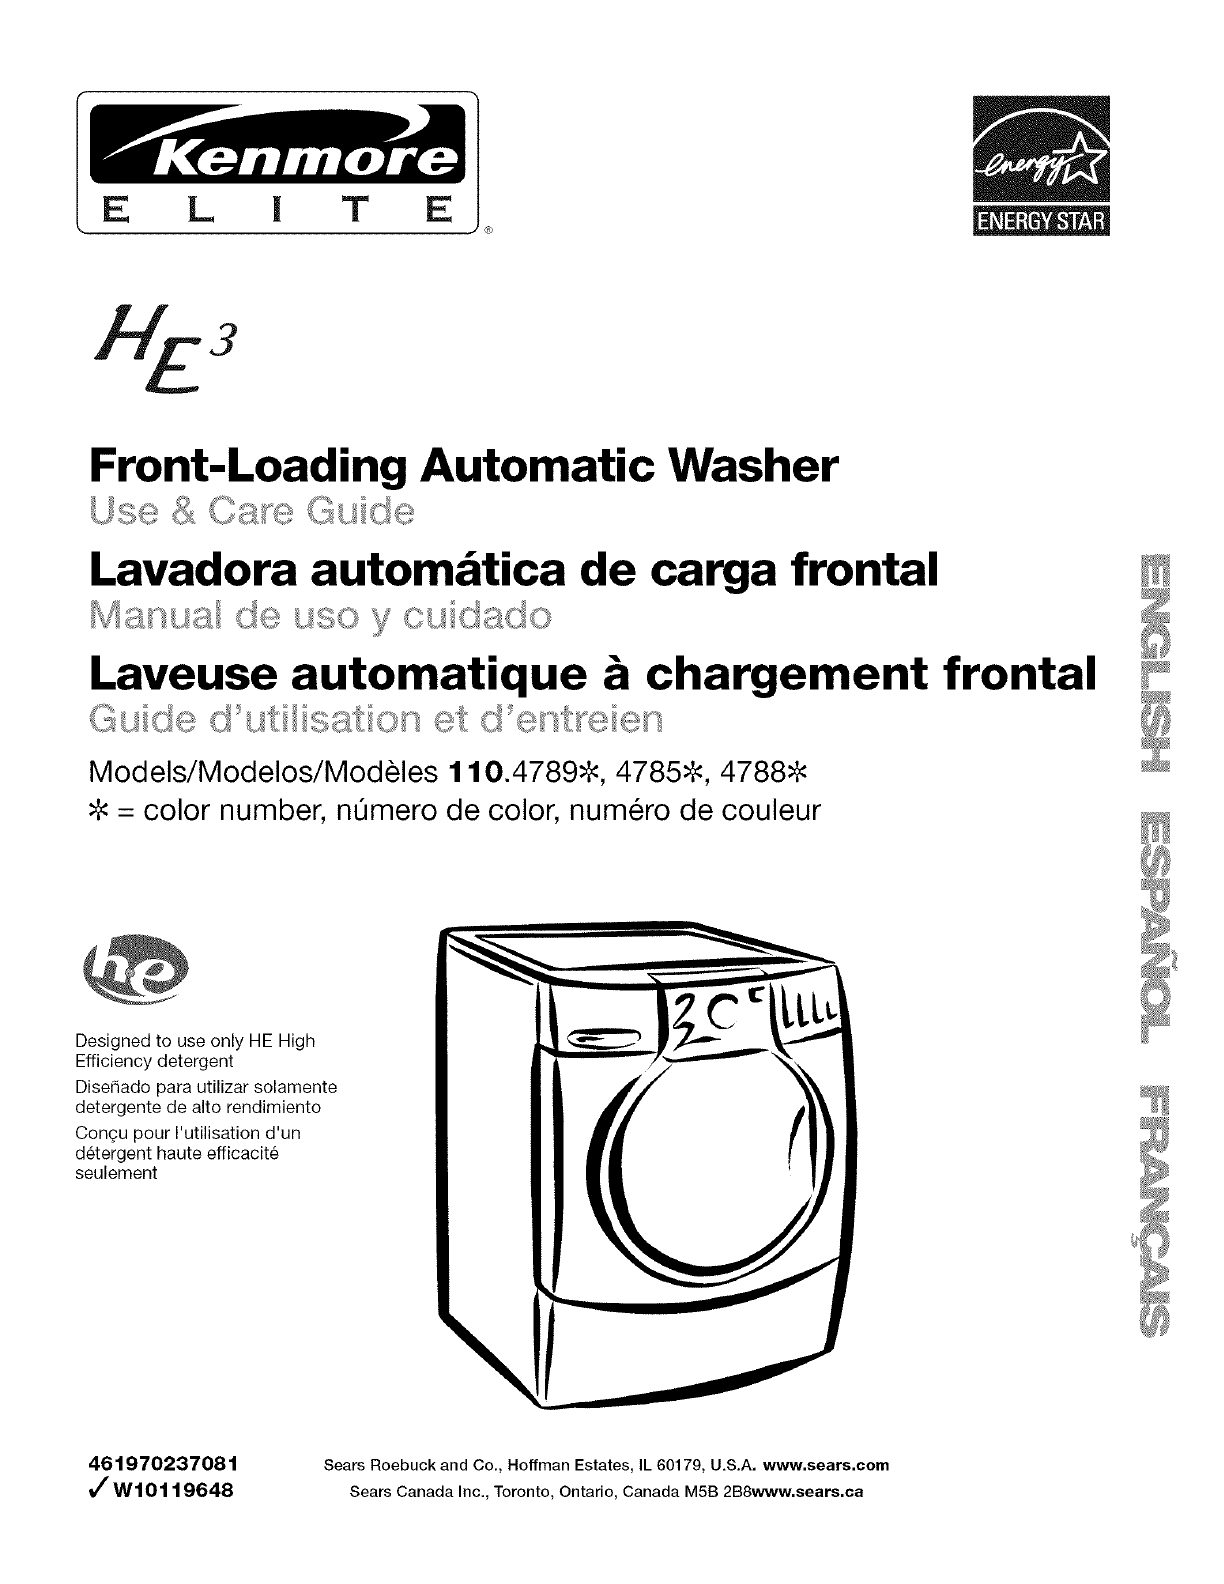 kenmore washer 4788 user guide manualsonline com rh laundry manualsonline com kenmore front load washer troubleshooting guide kenmore washer troubleshooting manual